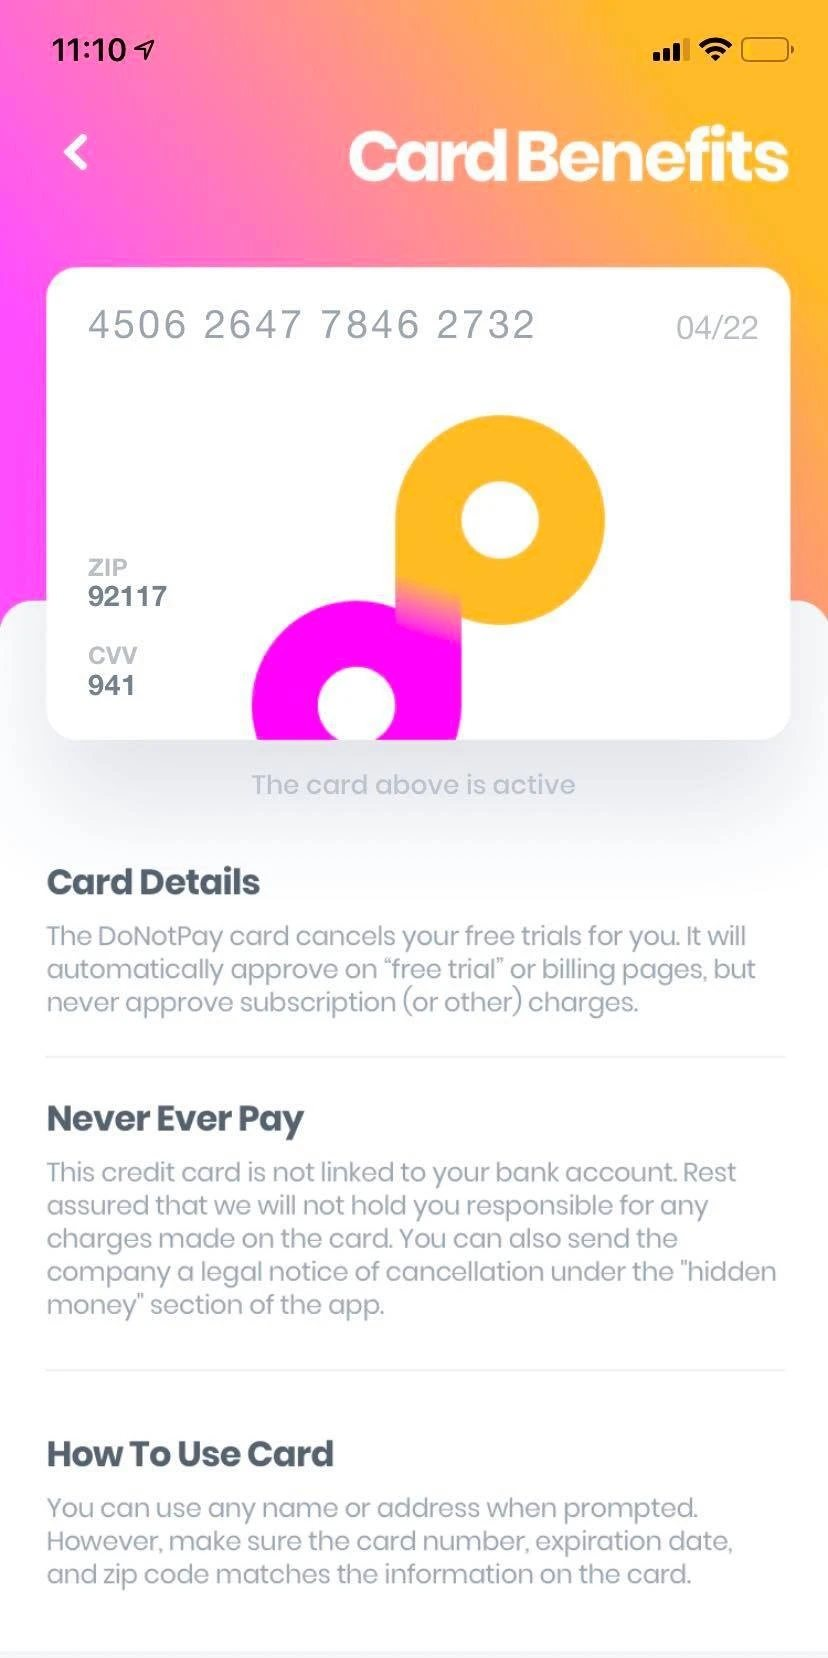 DoNotPay